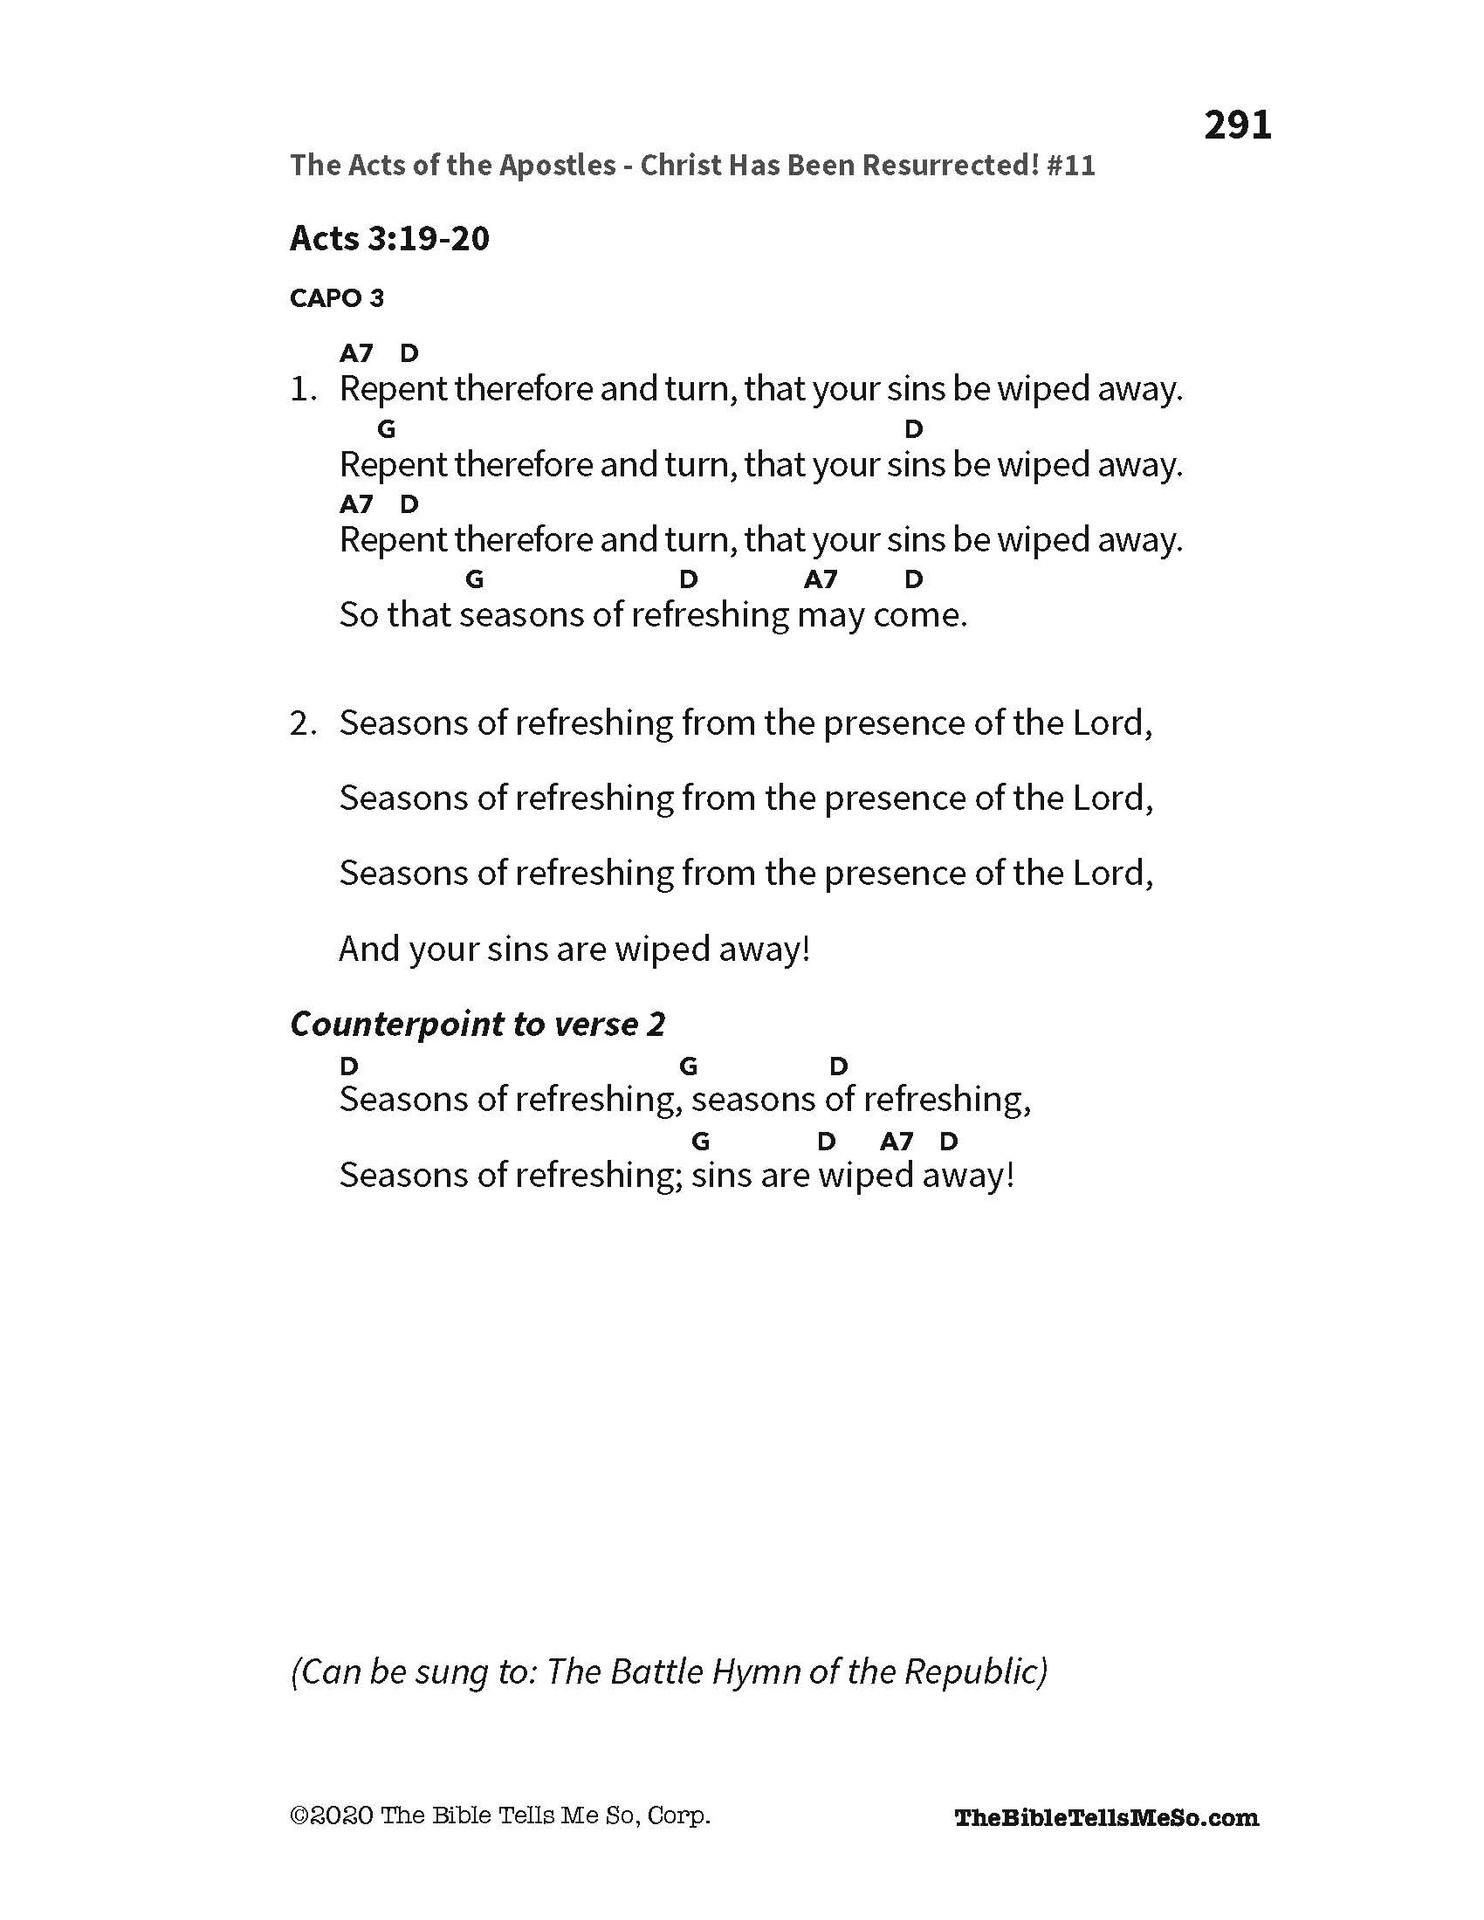 SongSheets-JPGS_Page_293.jpg